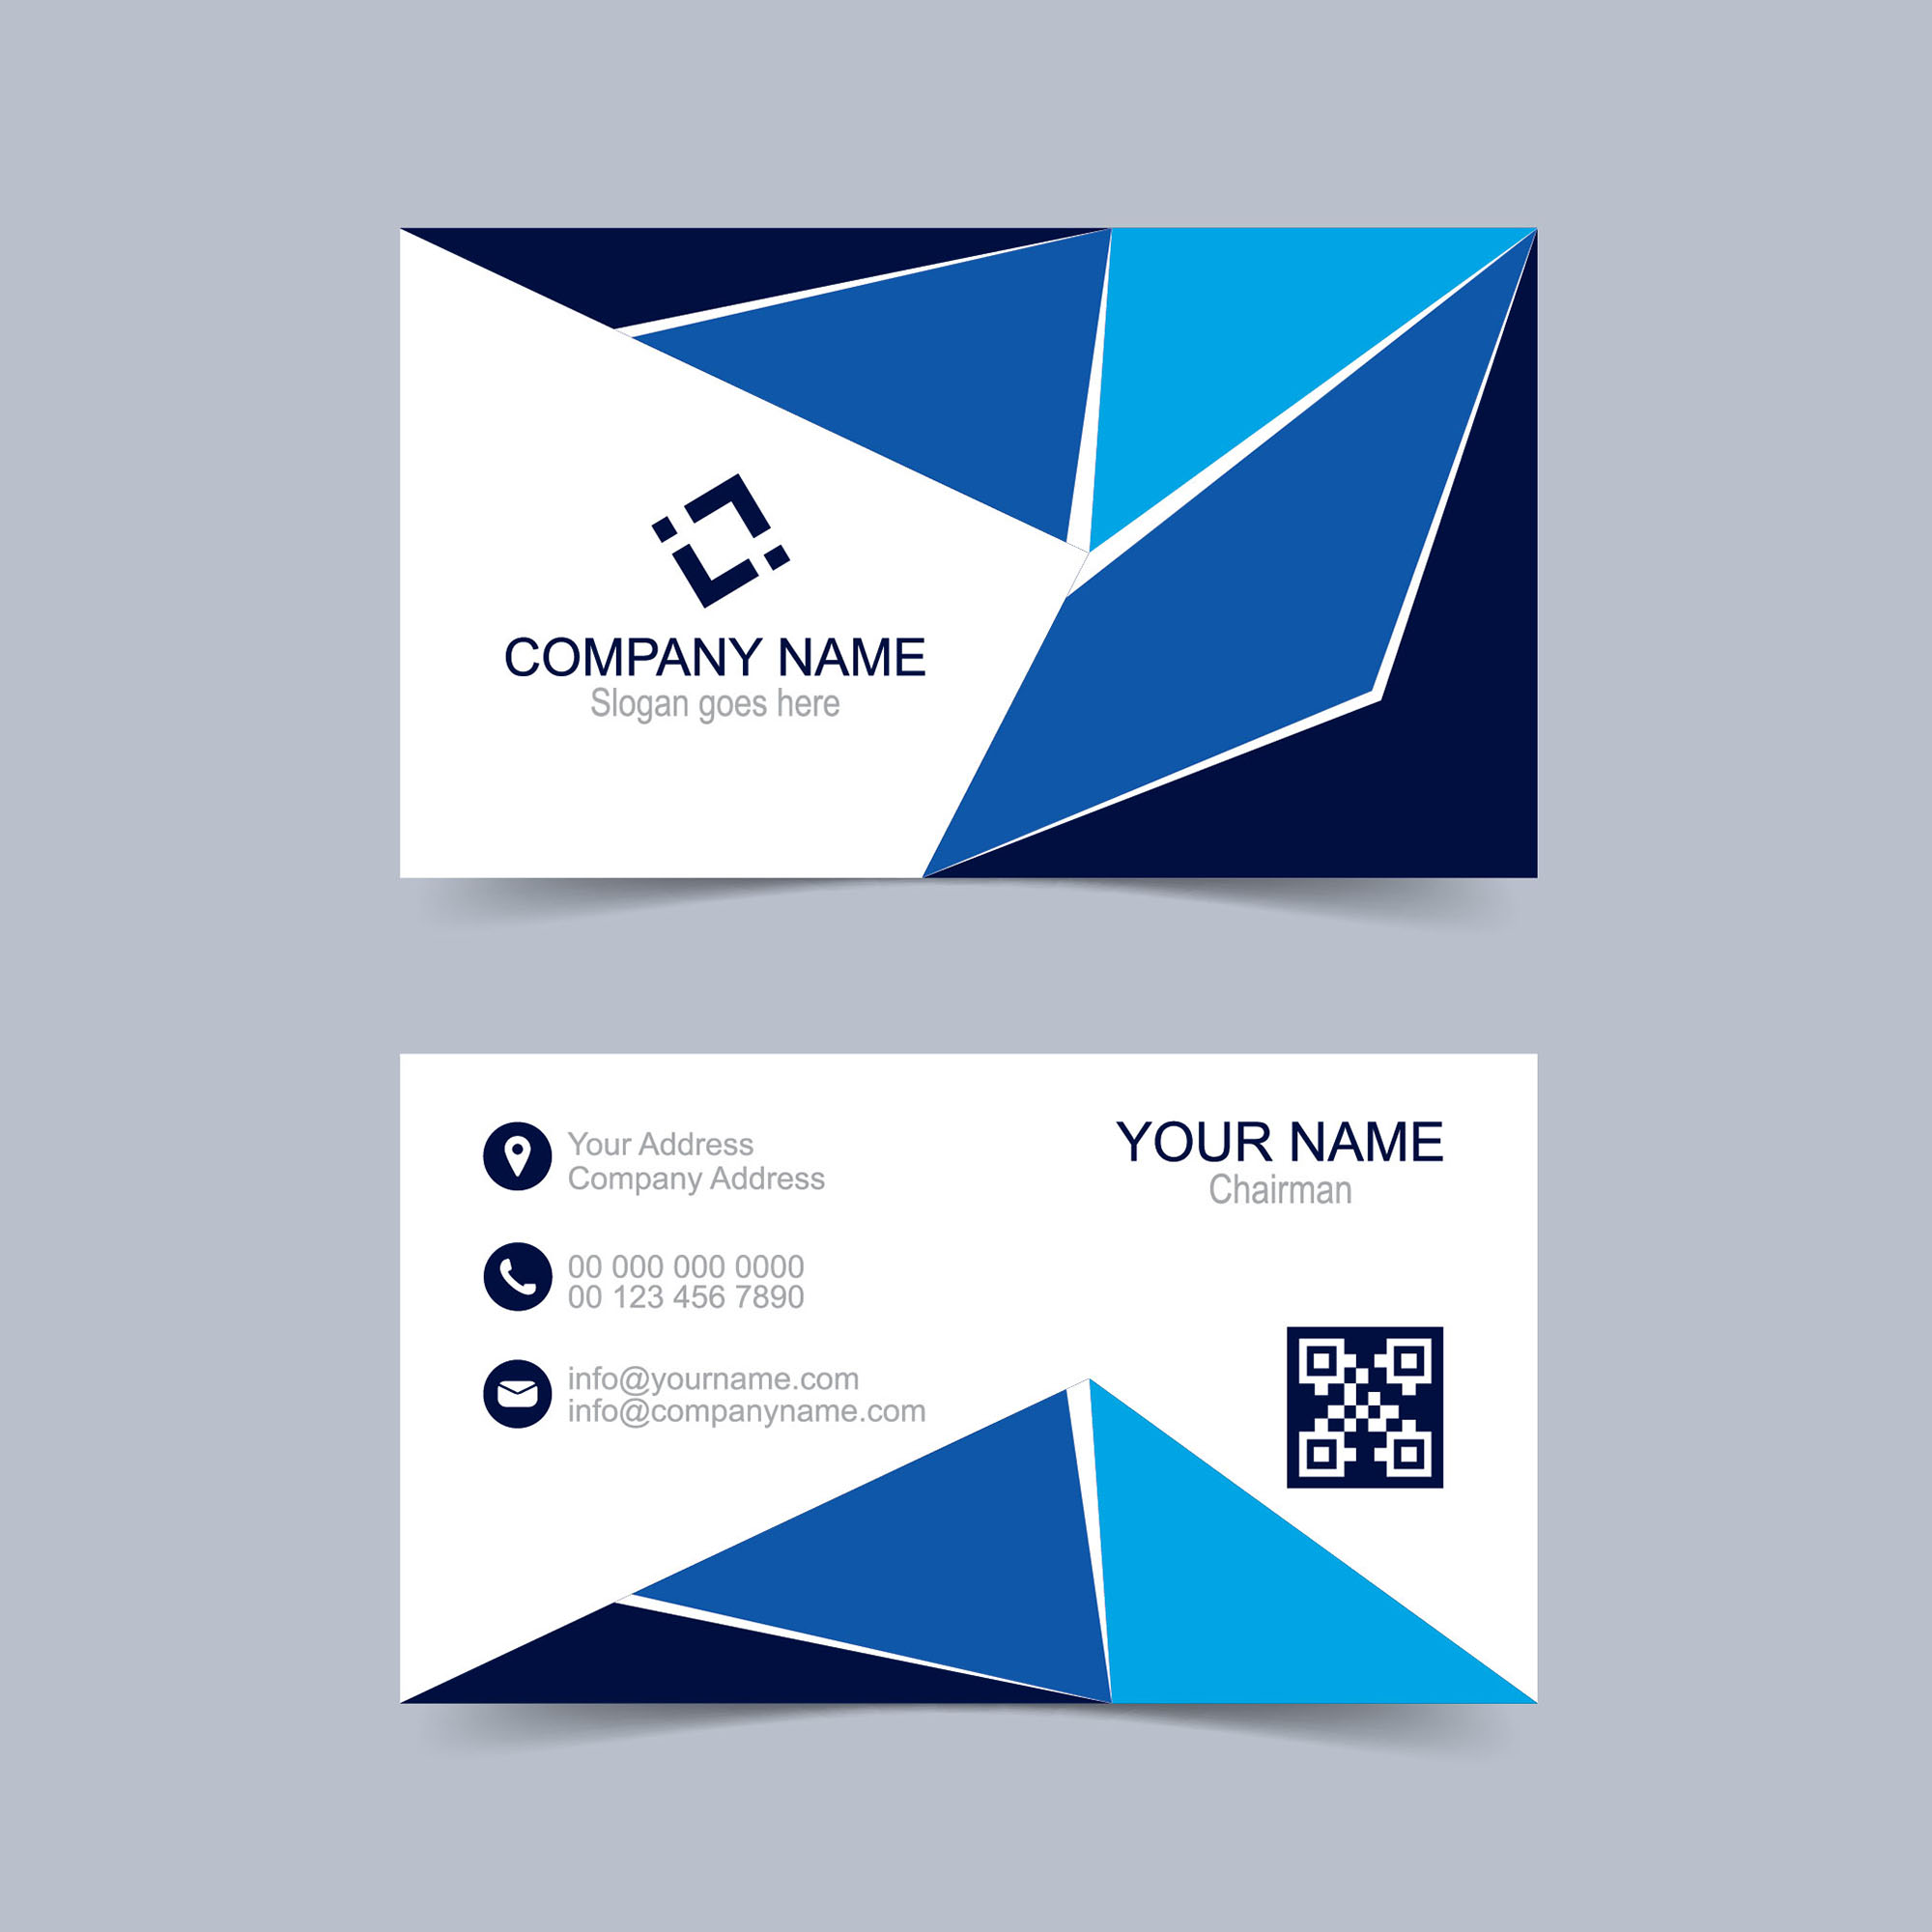 creative business card design free download wisxi com